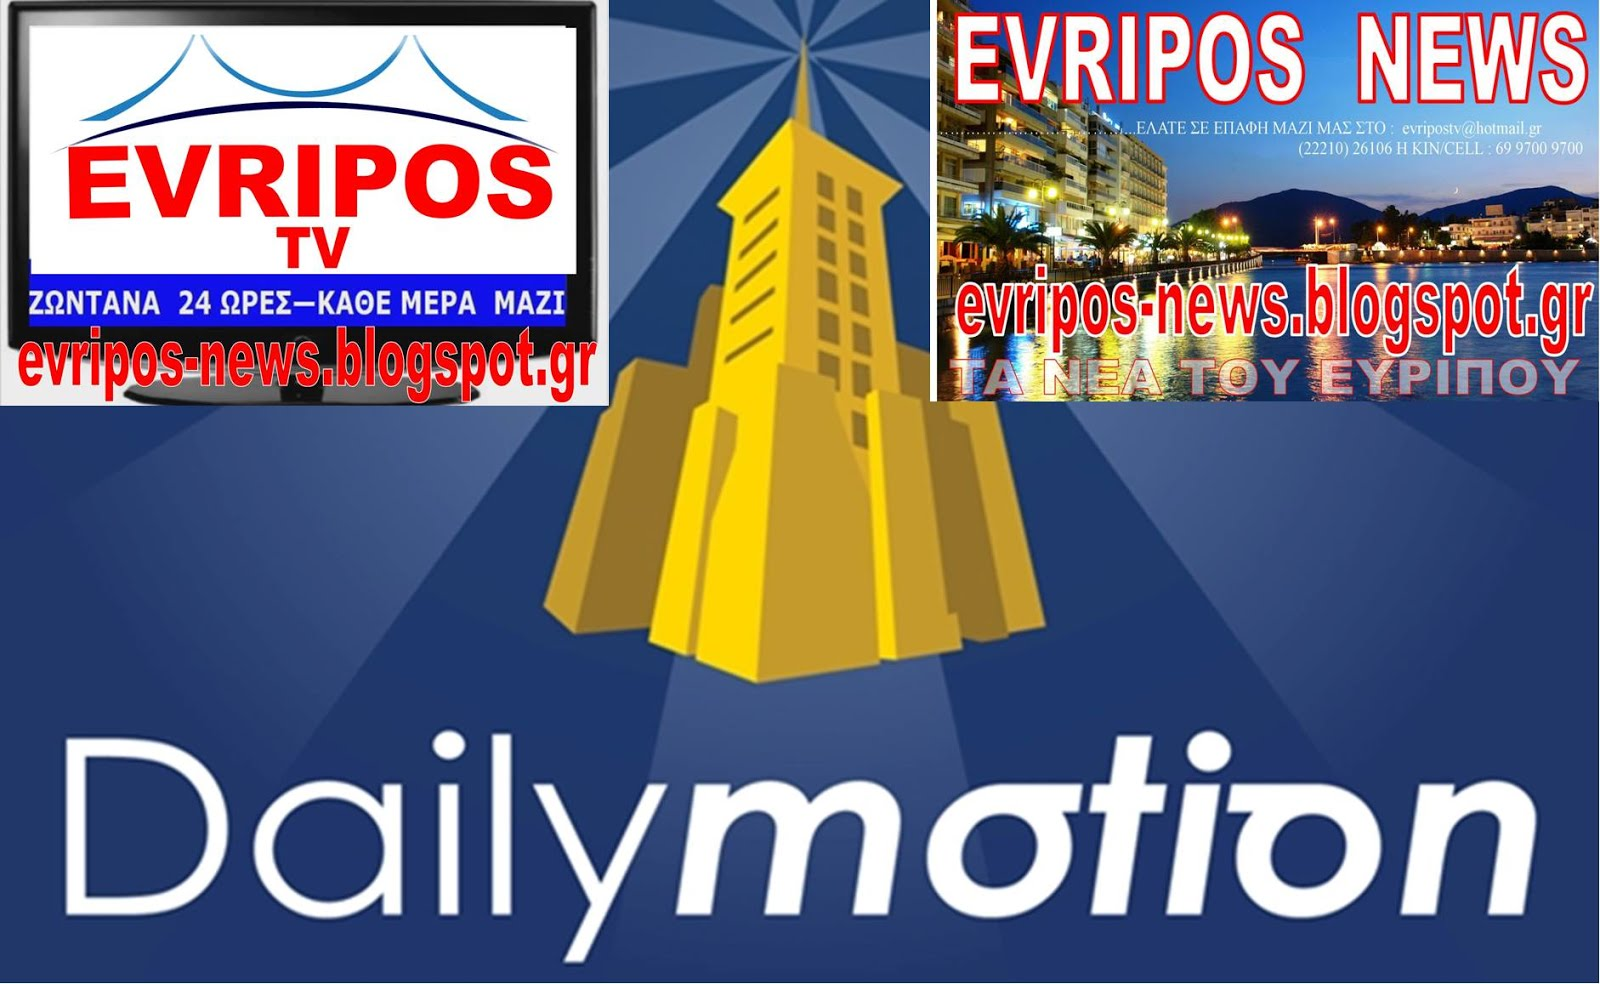 EVRIPOS TV ΣTO DAILYMOTION